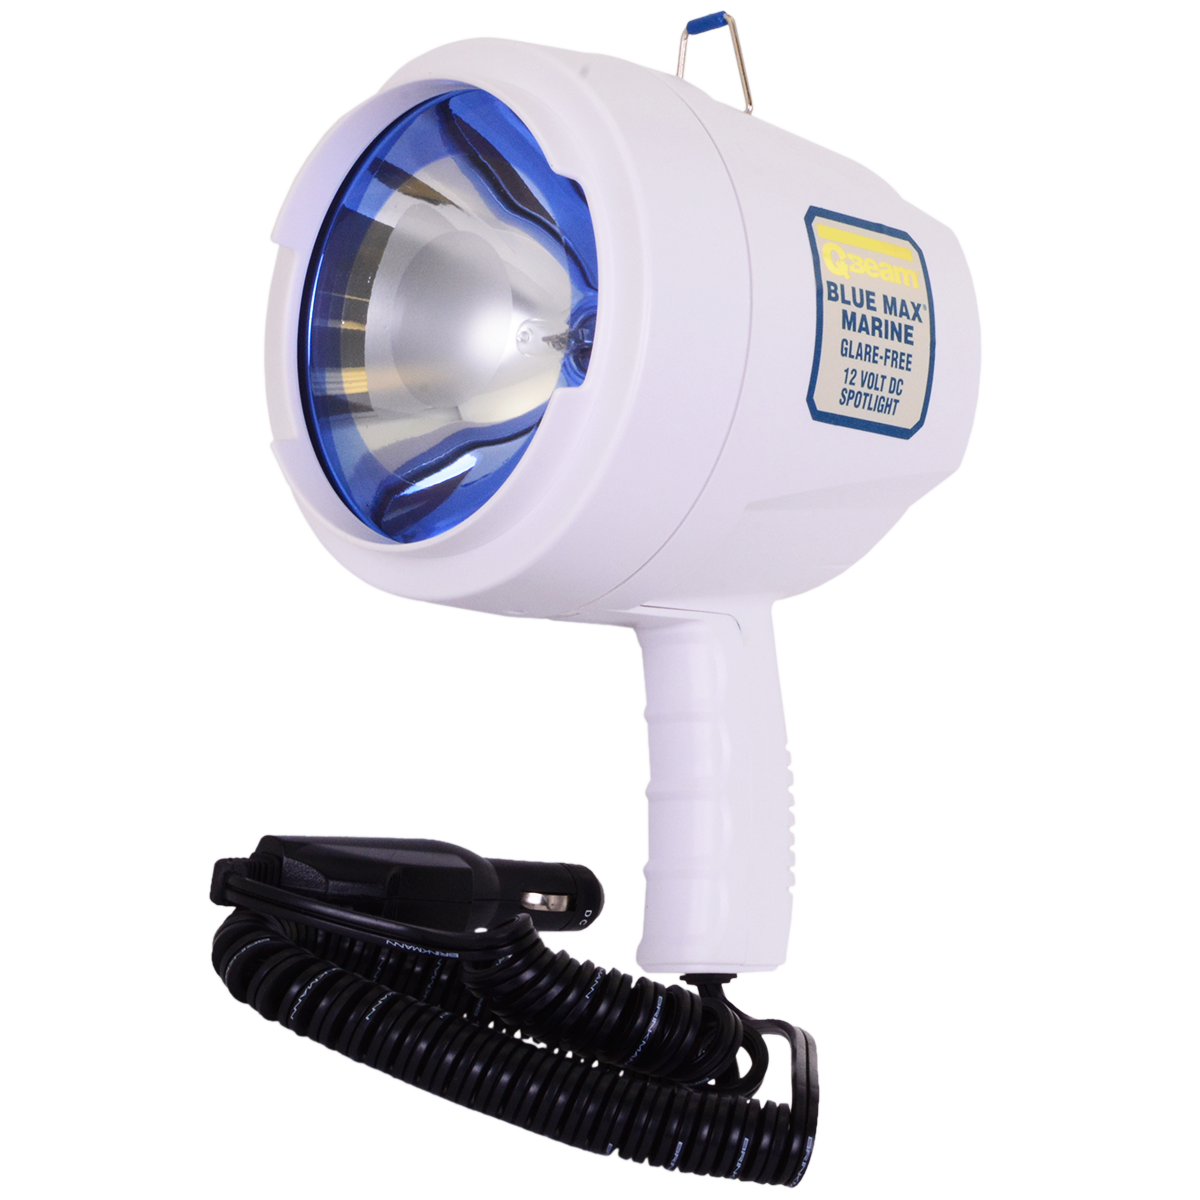 Q-Beam Marine Blue Max 1100 DC Spotlight